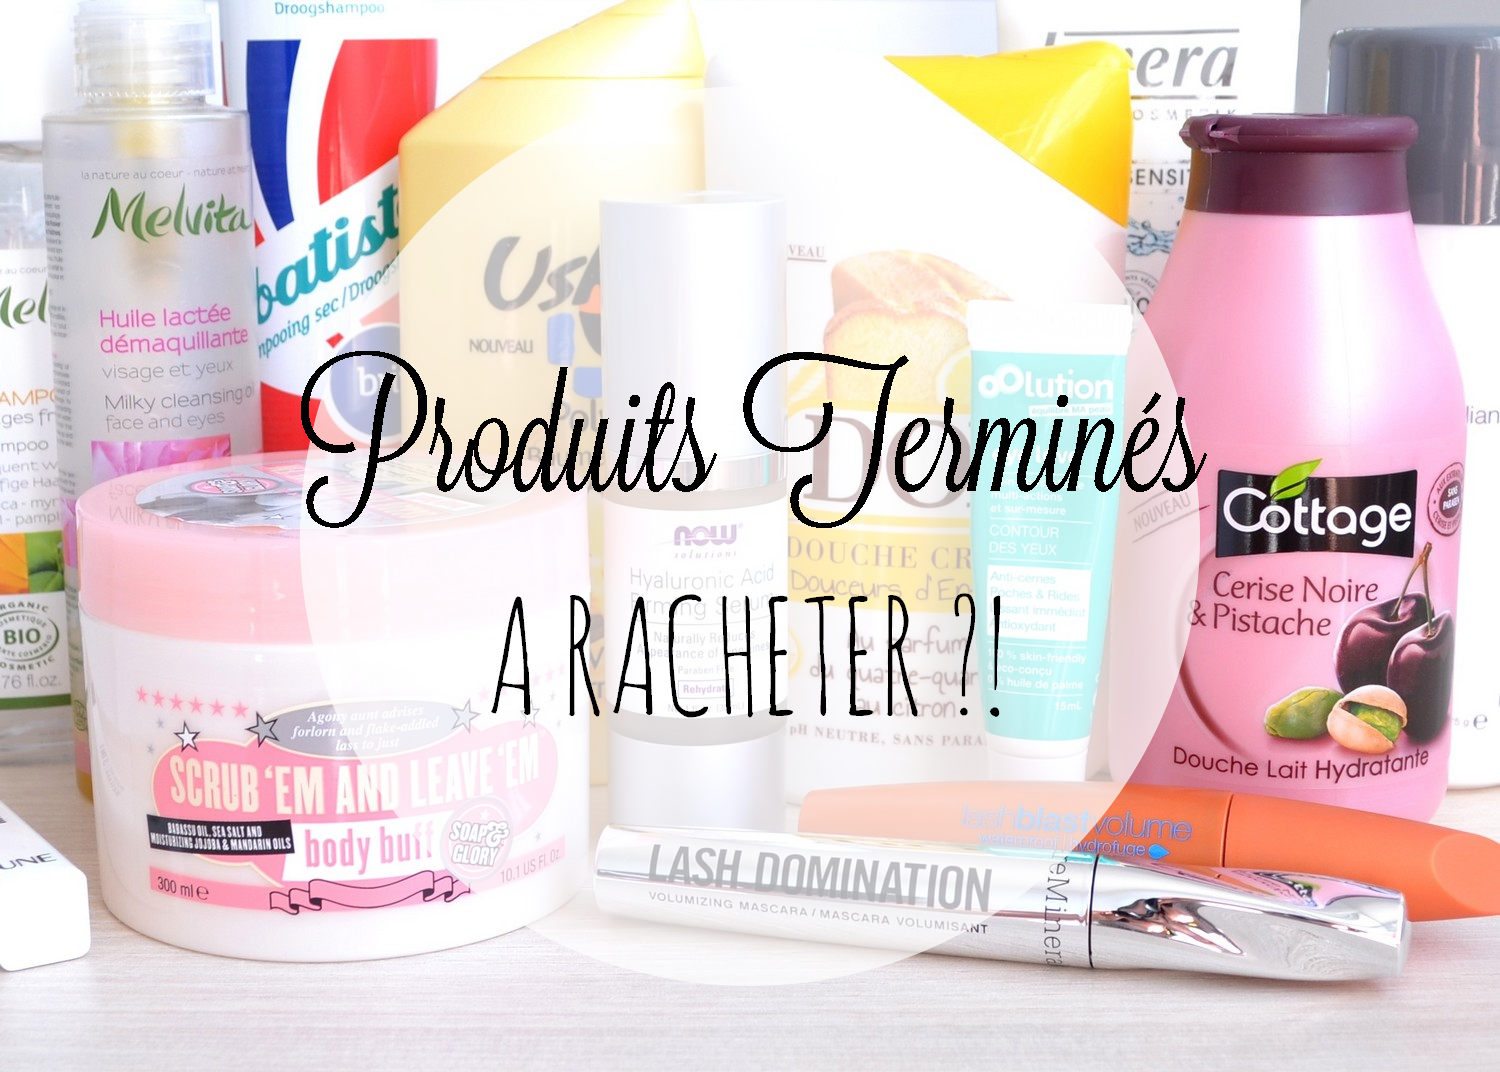 http://www.dreamingsmoothly.com/2015/04/produits-termines-racheter-6.html